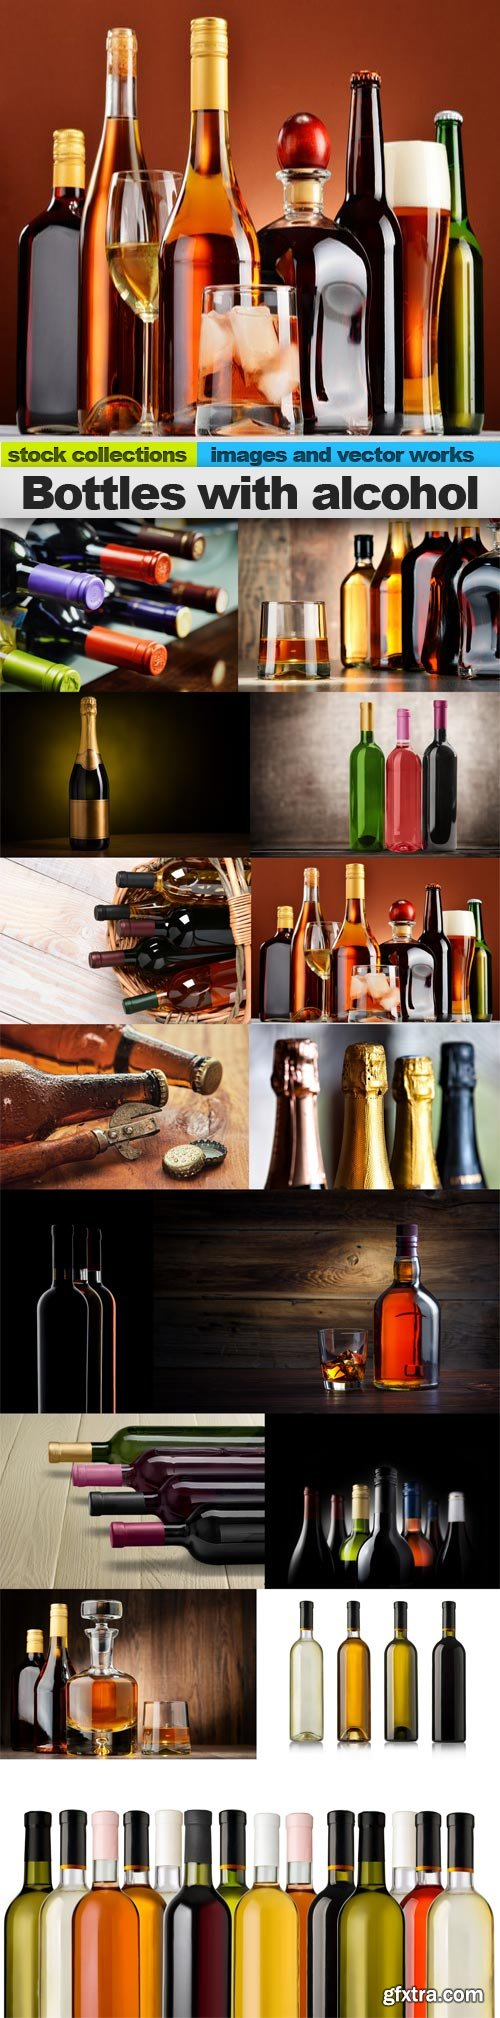 Bottles with alcohol, 15 x UHQ JPEG